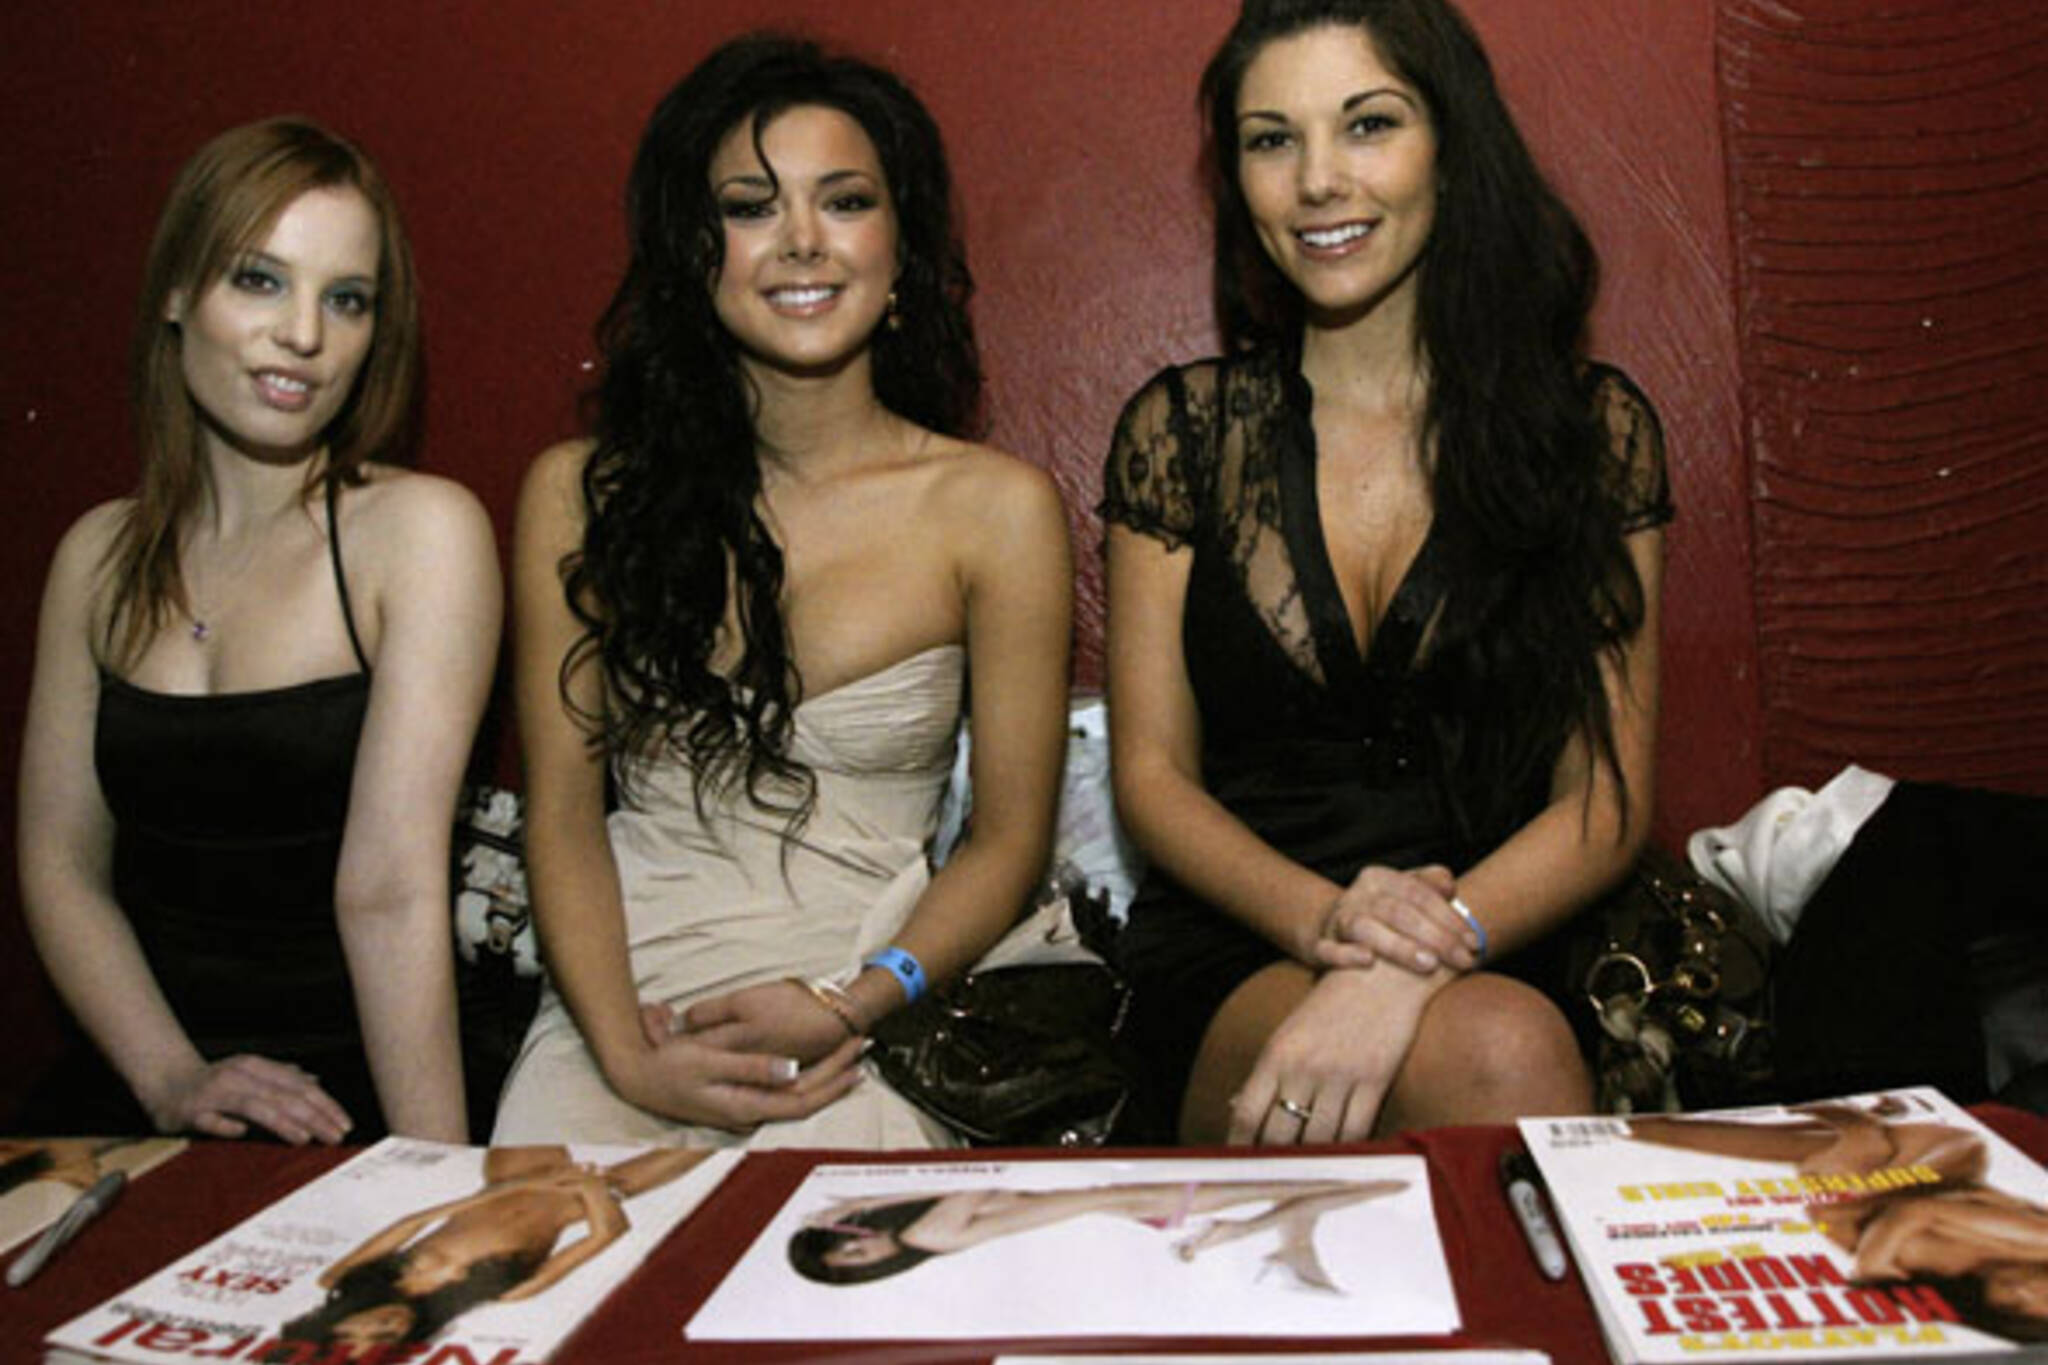 Playboy models Anissa Holmes, Pamela Mars and Lana Tailor at Zack Taylor's Winterbash party at Lee's Palace in Toronto